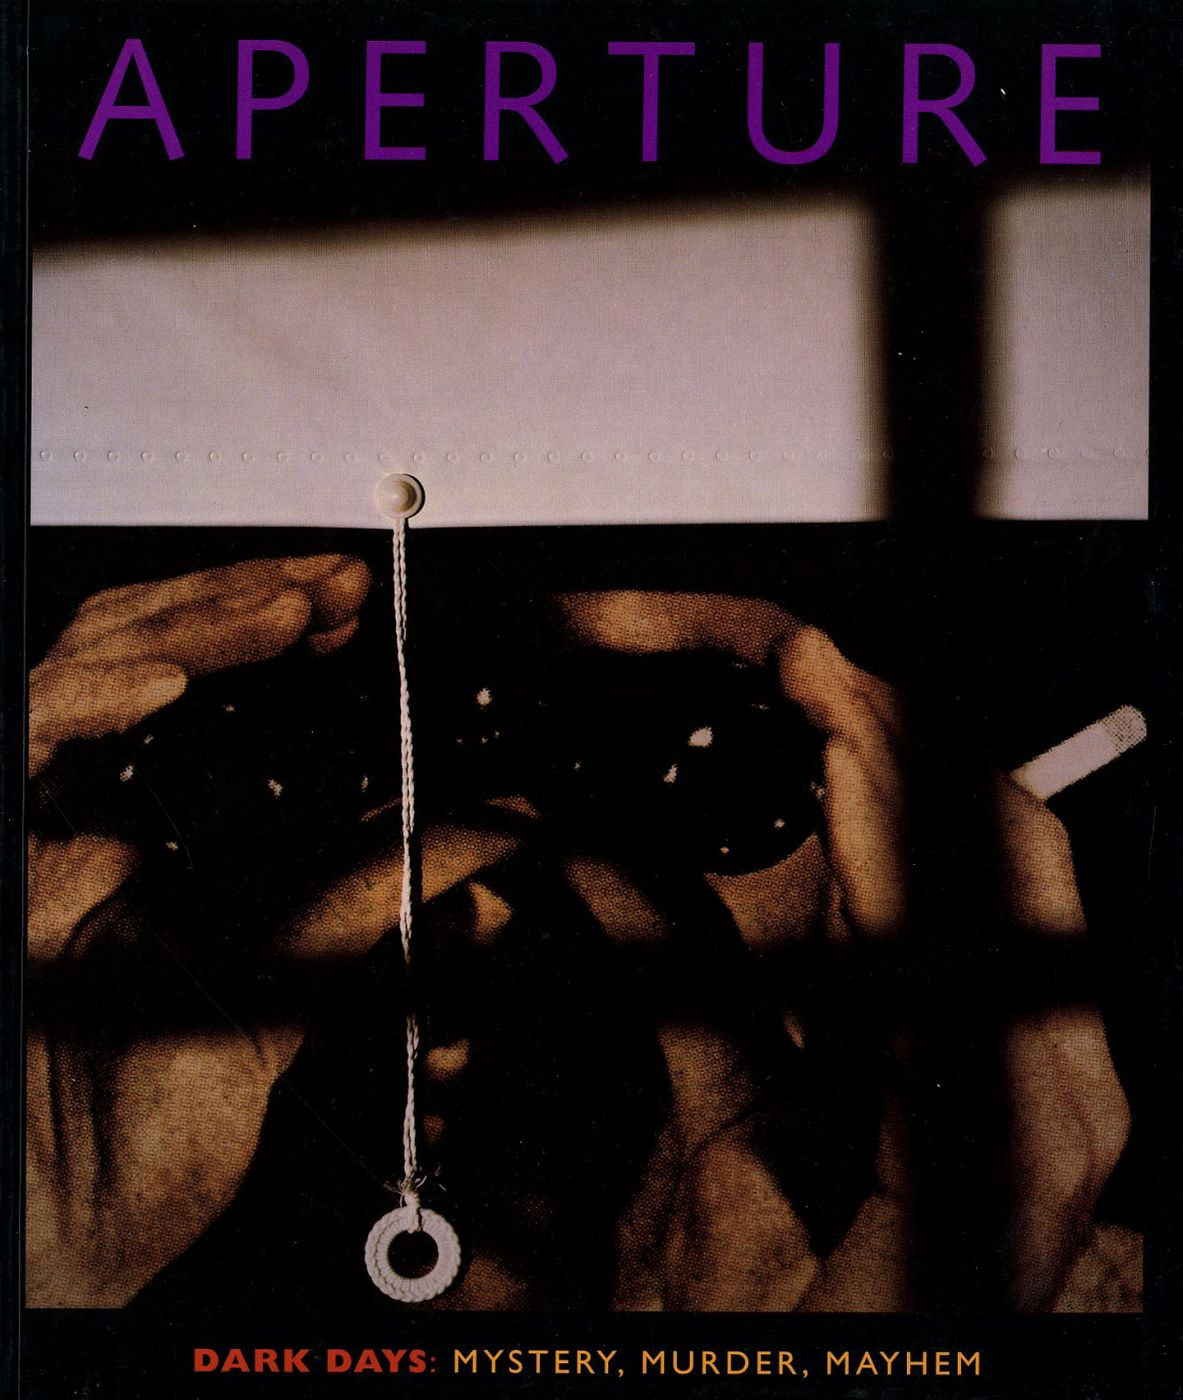 Aperture 149 - Dark Days: Mystery, Murder, Mayhem